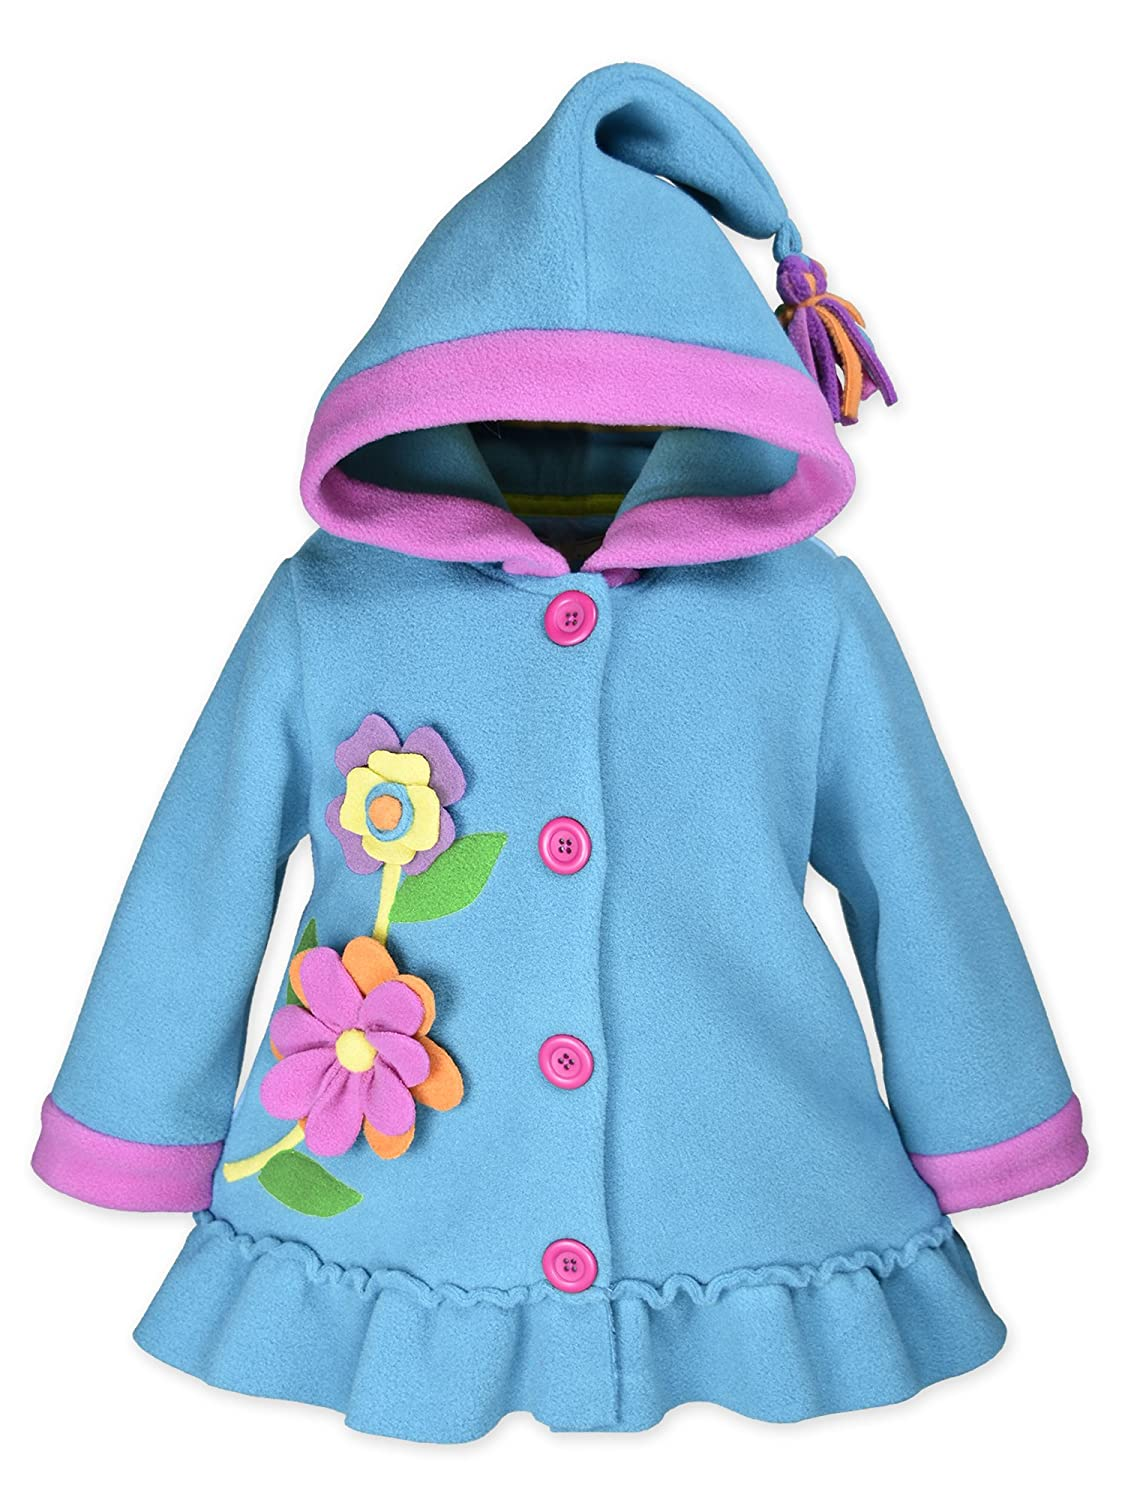 Widgeon Girls Hooded Fleece Flower Coat 3752